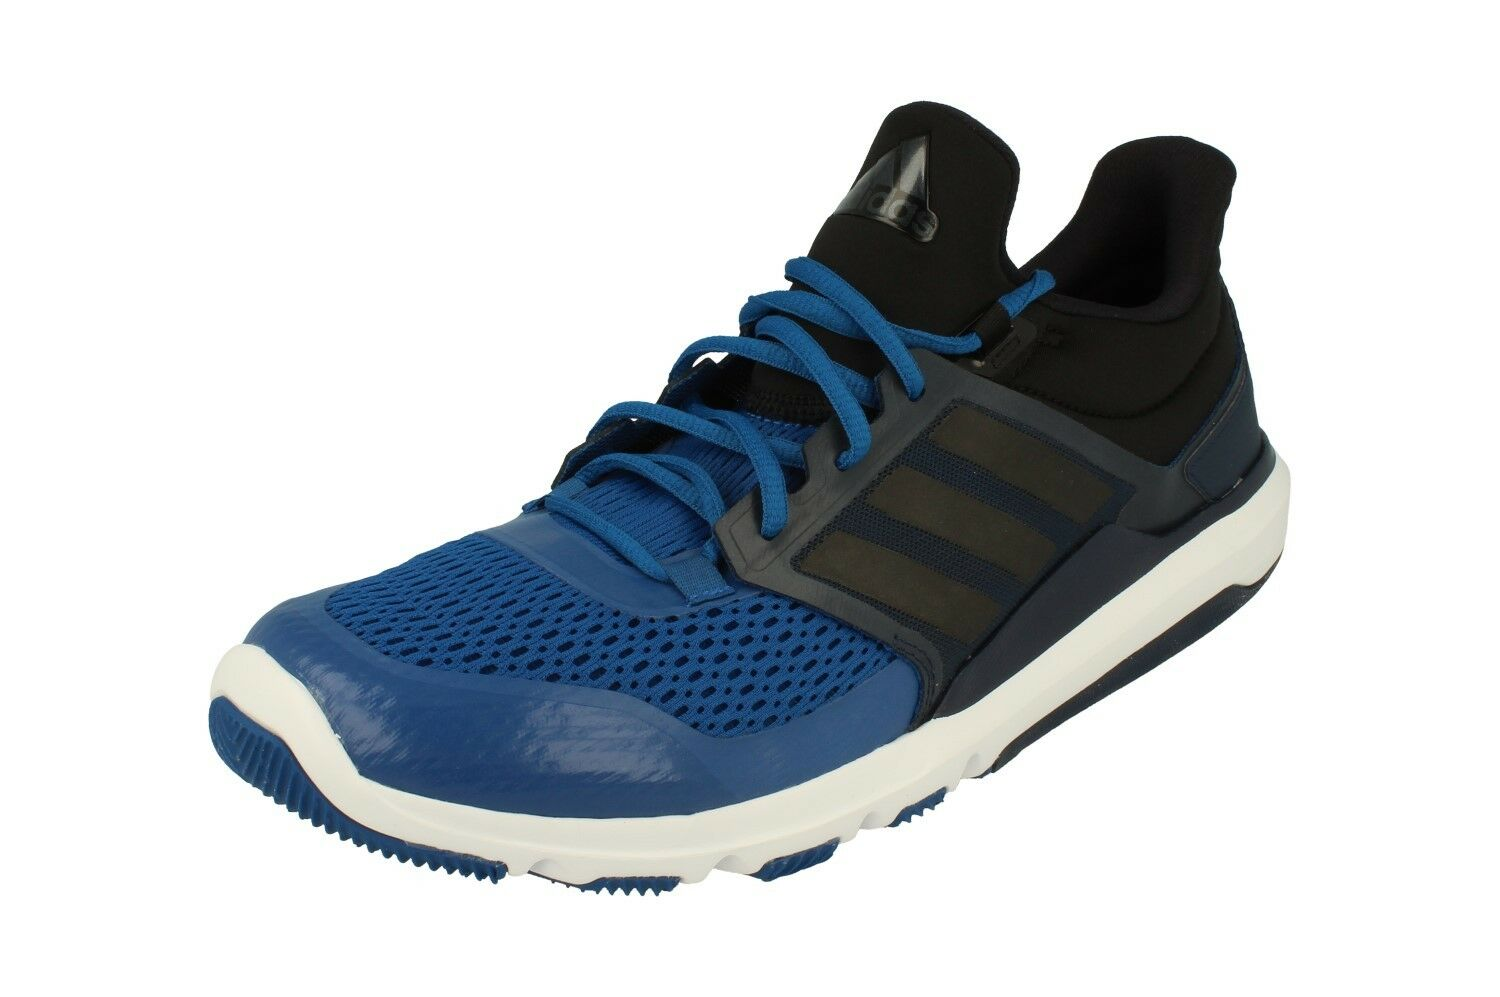 Adidas Trainers Adipure 360.3 Mens Running Trainers Adidas Sneakers AF5464 Shoes 87f27e